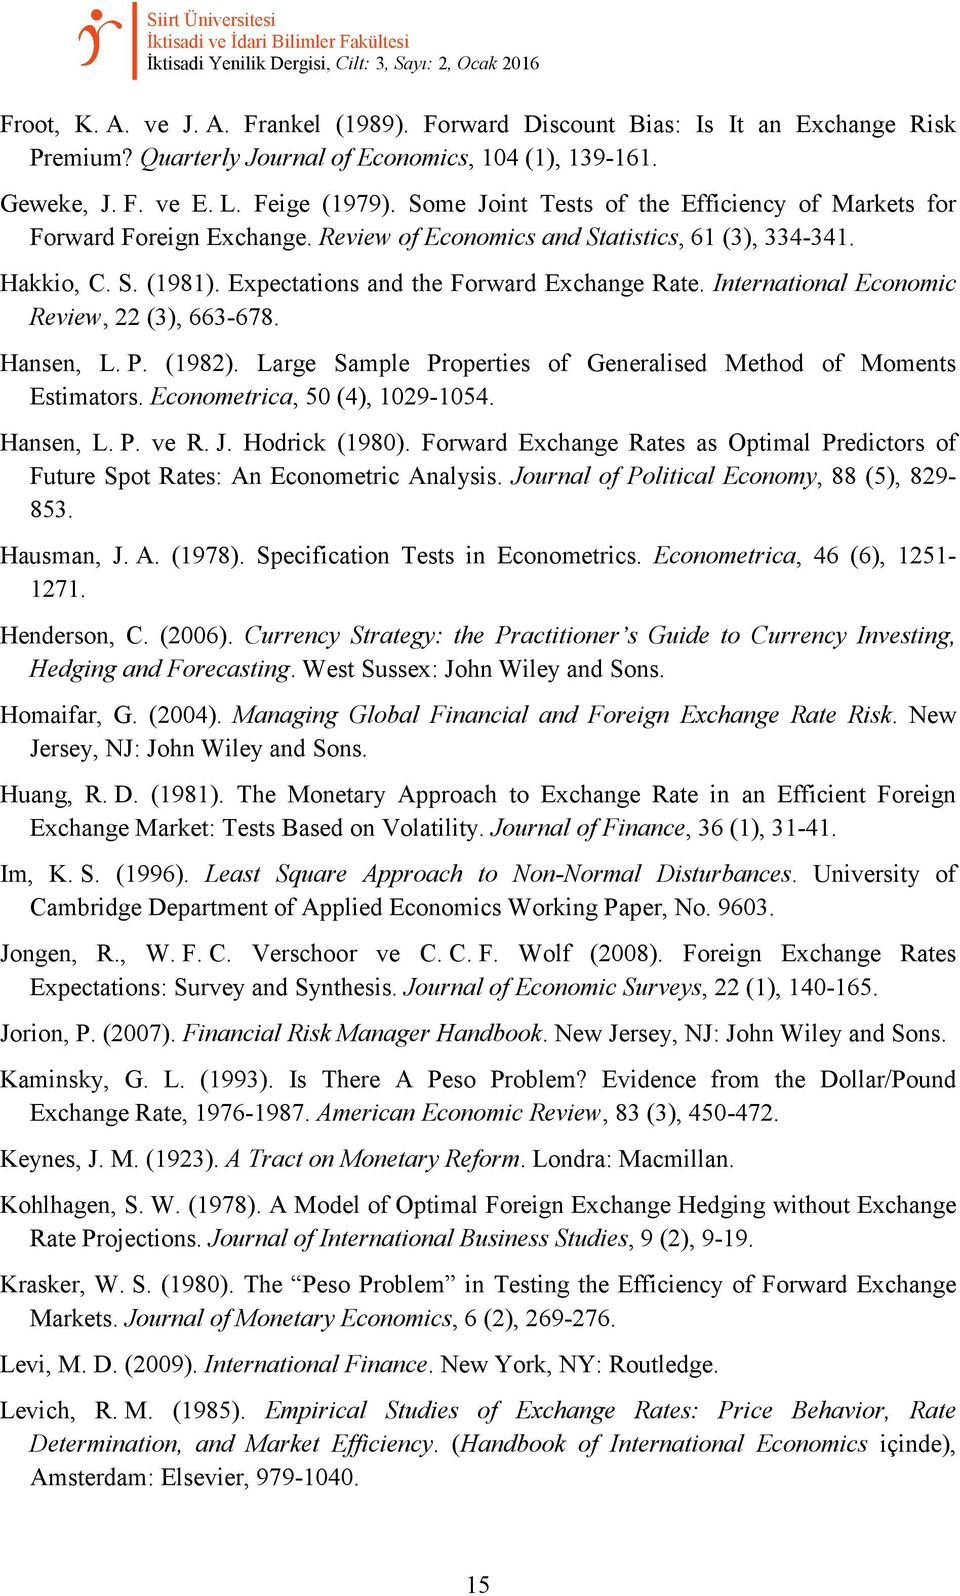 Some Joint Tests of the Efficiency of Markets for Forward Foreign Exchange. Review of Economics and Statistics, 61 (3), 334-341. Hakkio, C. S. (1981). Expectations and the Forward Exchange Rate.